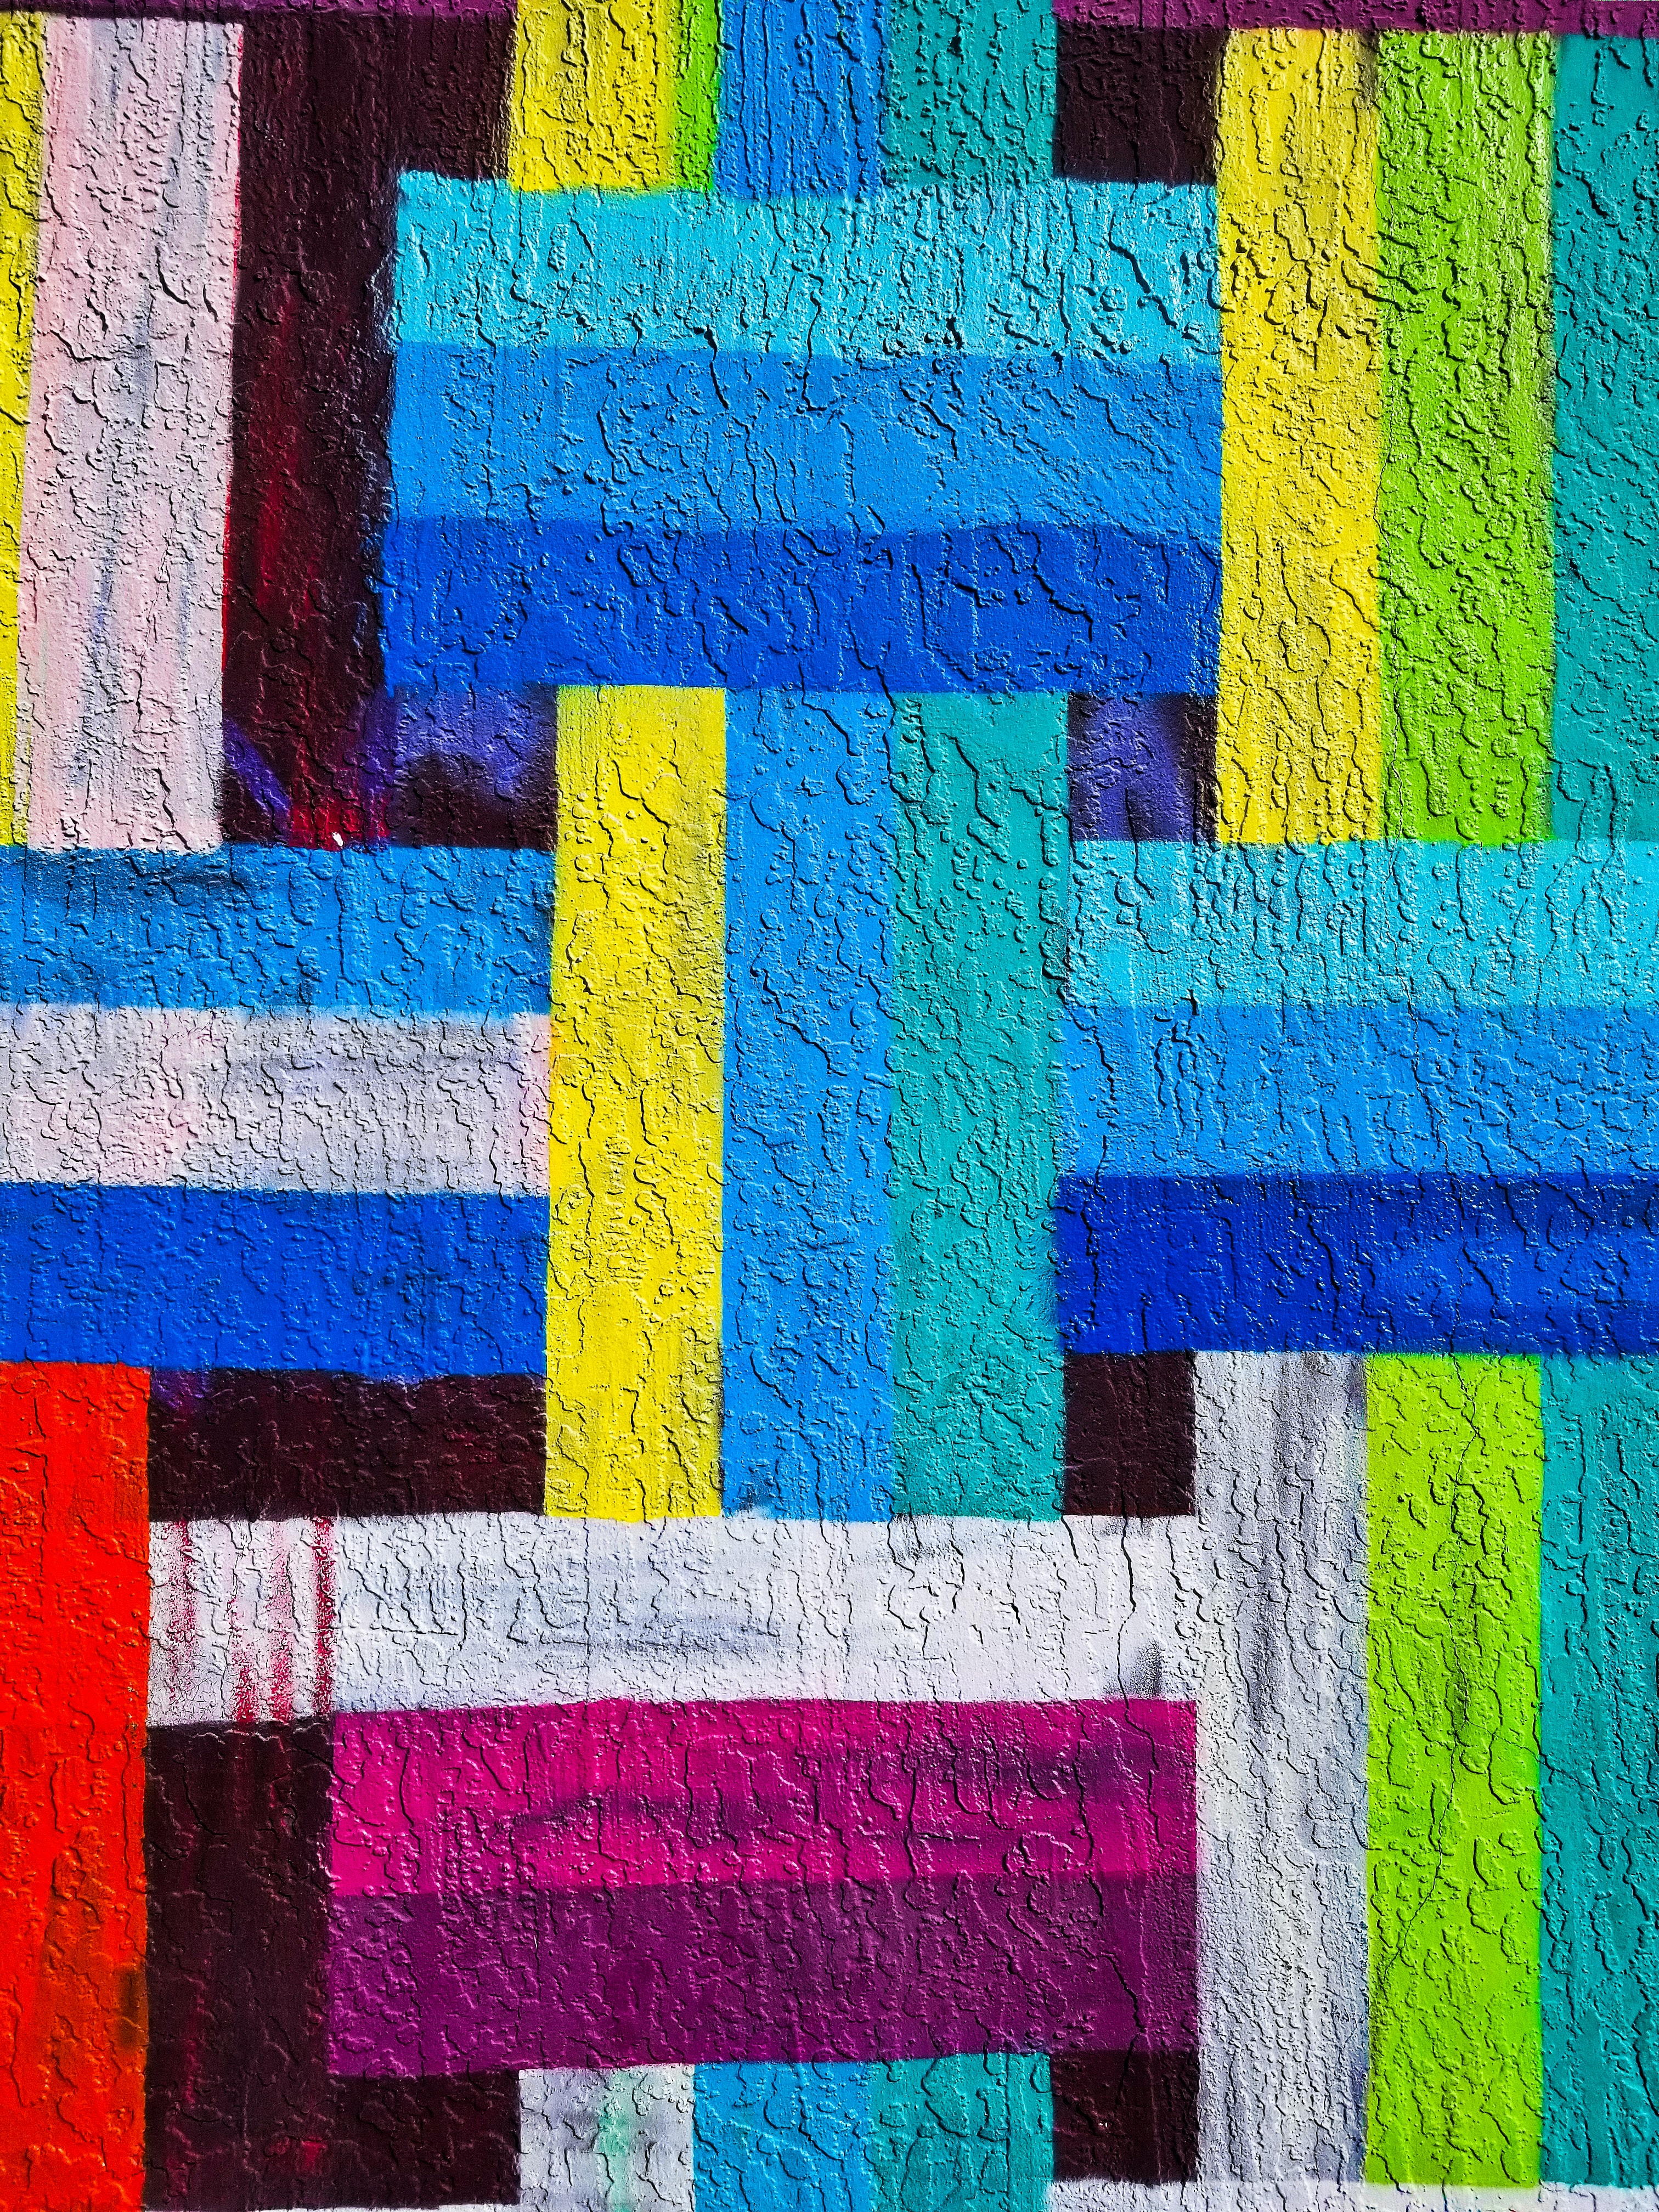 133430 download wallpaper Abstract, Lines, Stripes, Streaks, Multicolored, Motley, Paint, Wall screensavers and pictures for free